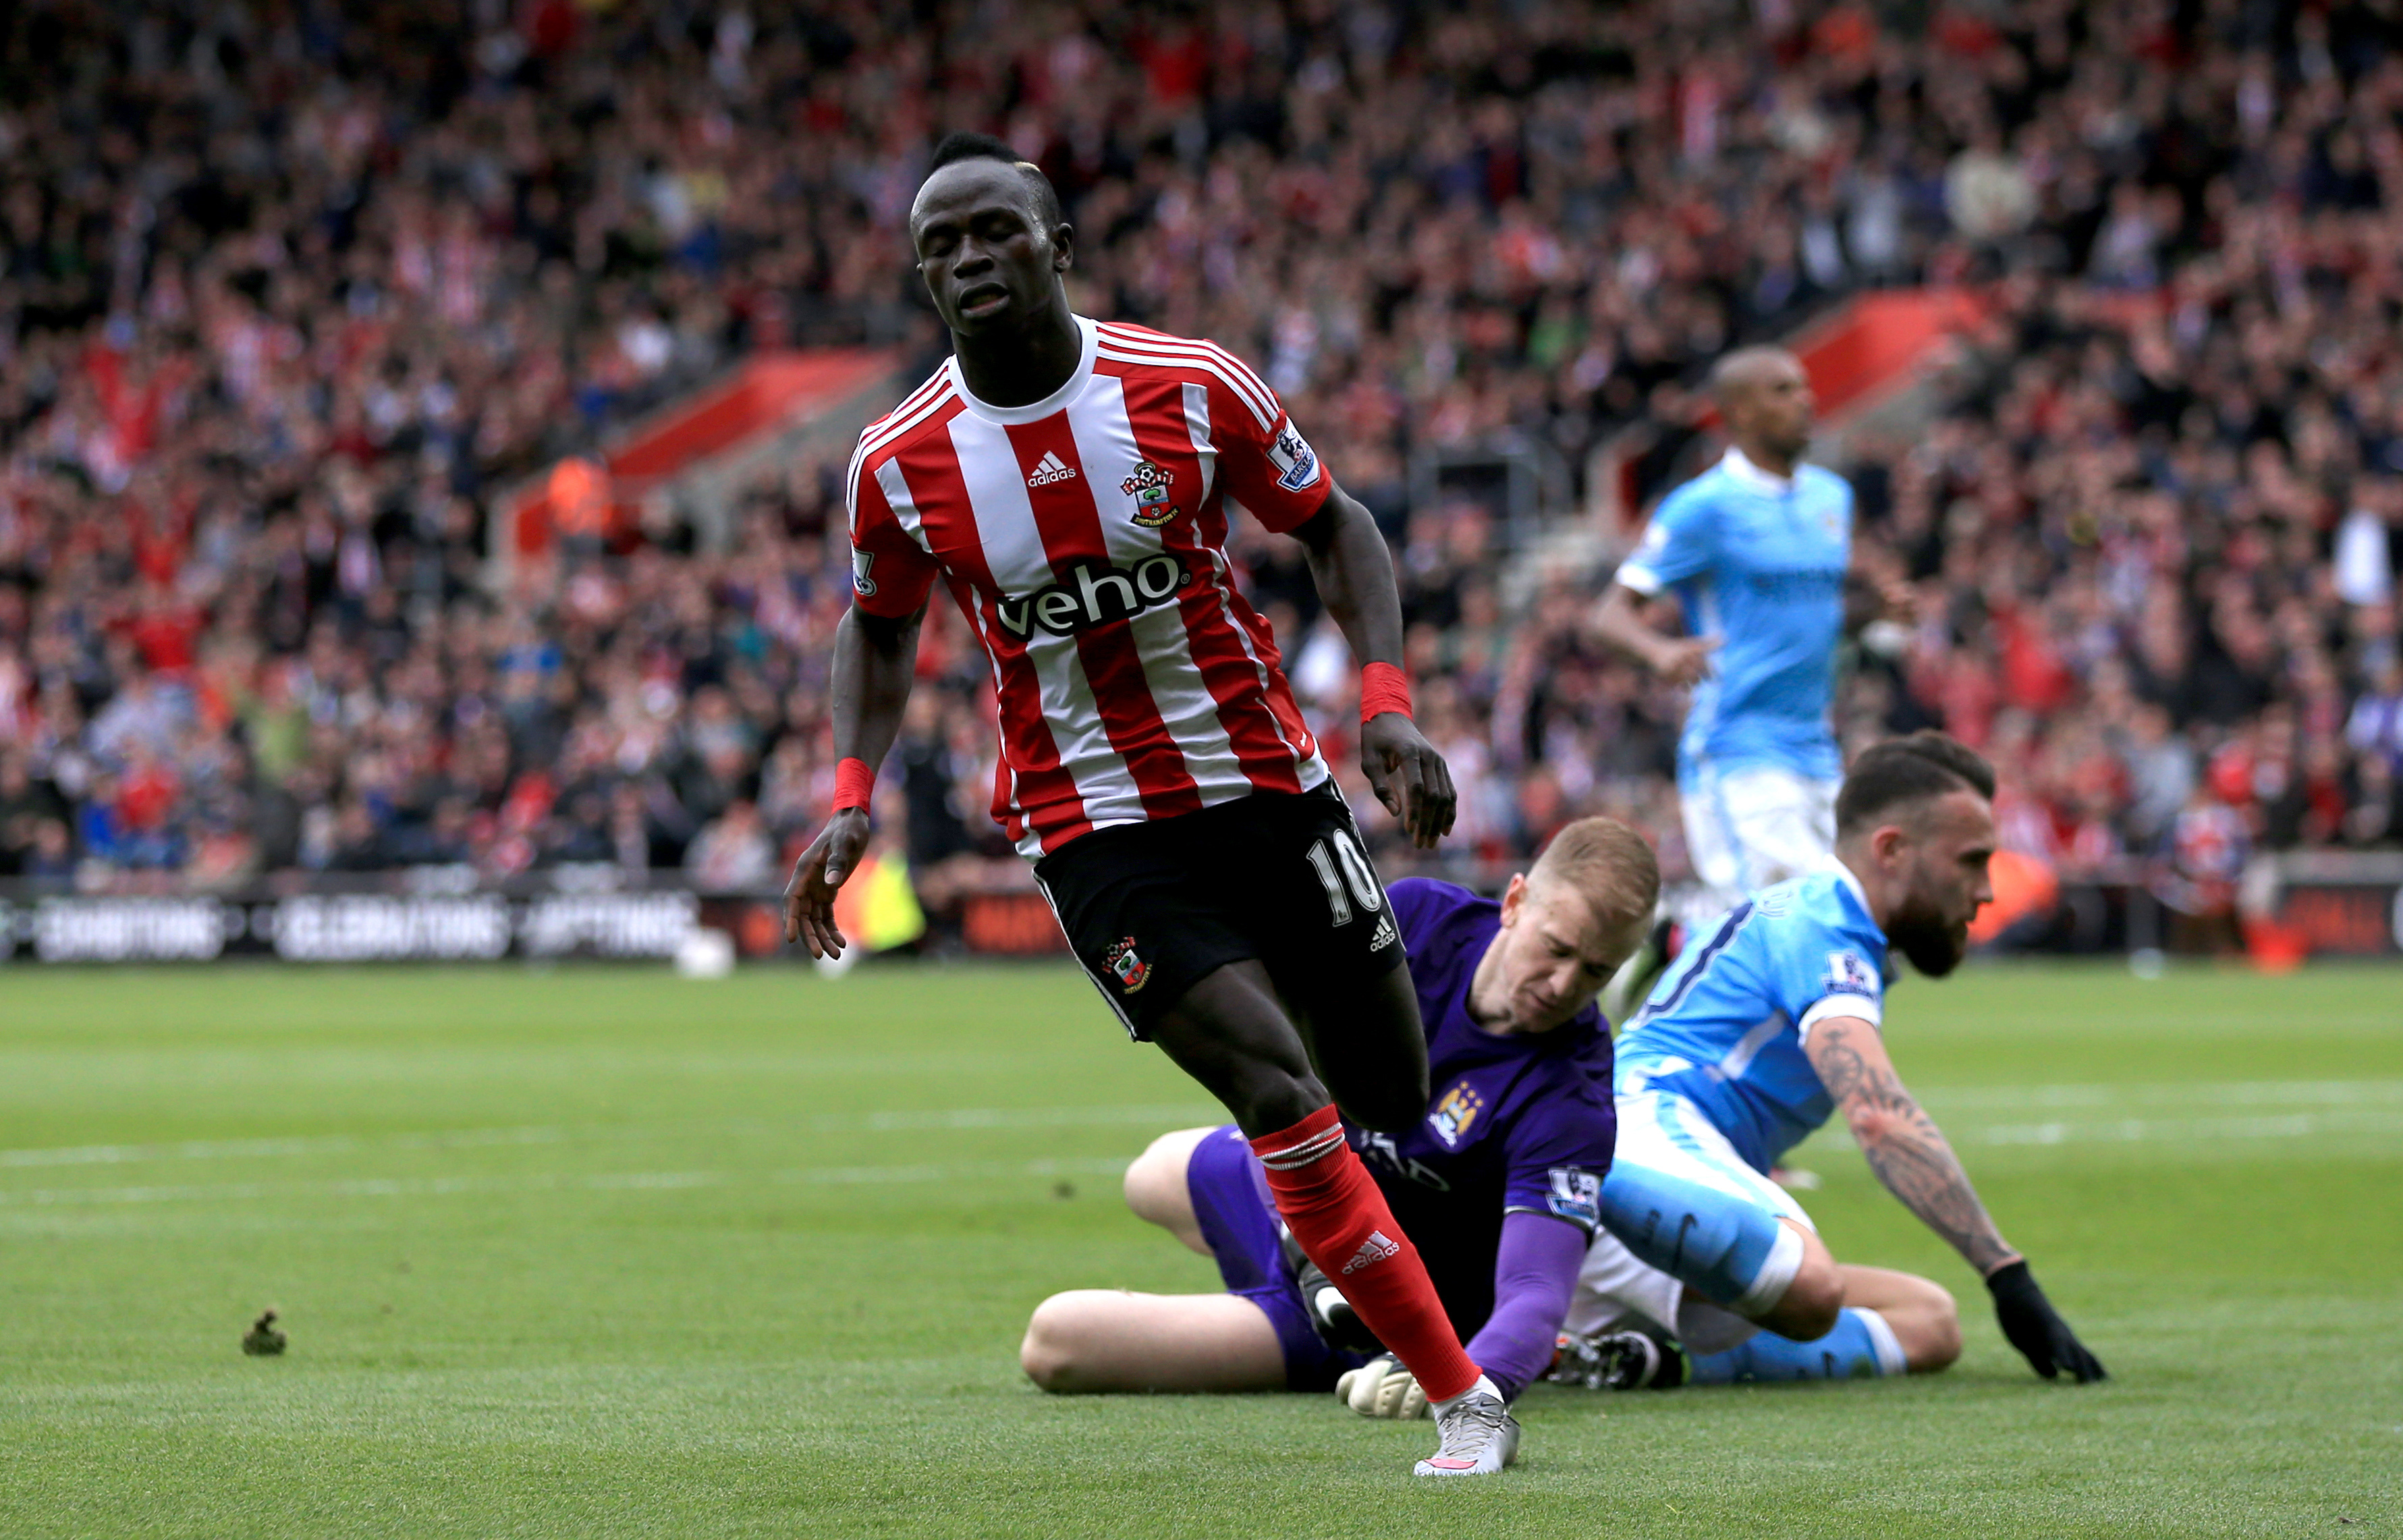 Mane was excellent at Southampton and has improved around better players. Image: PA Images